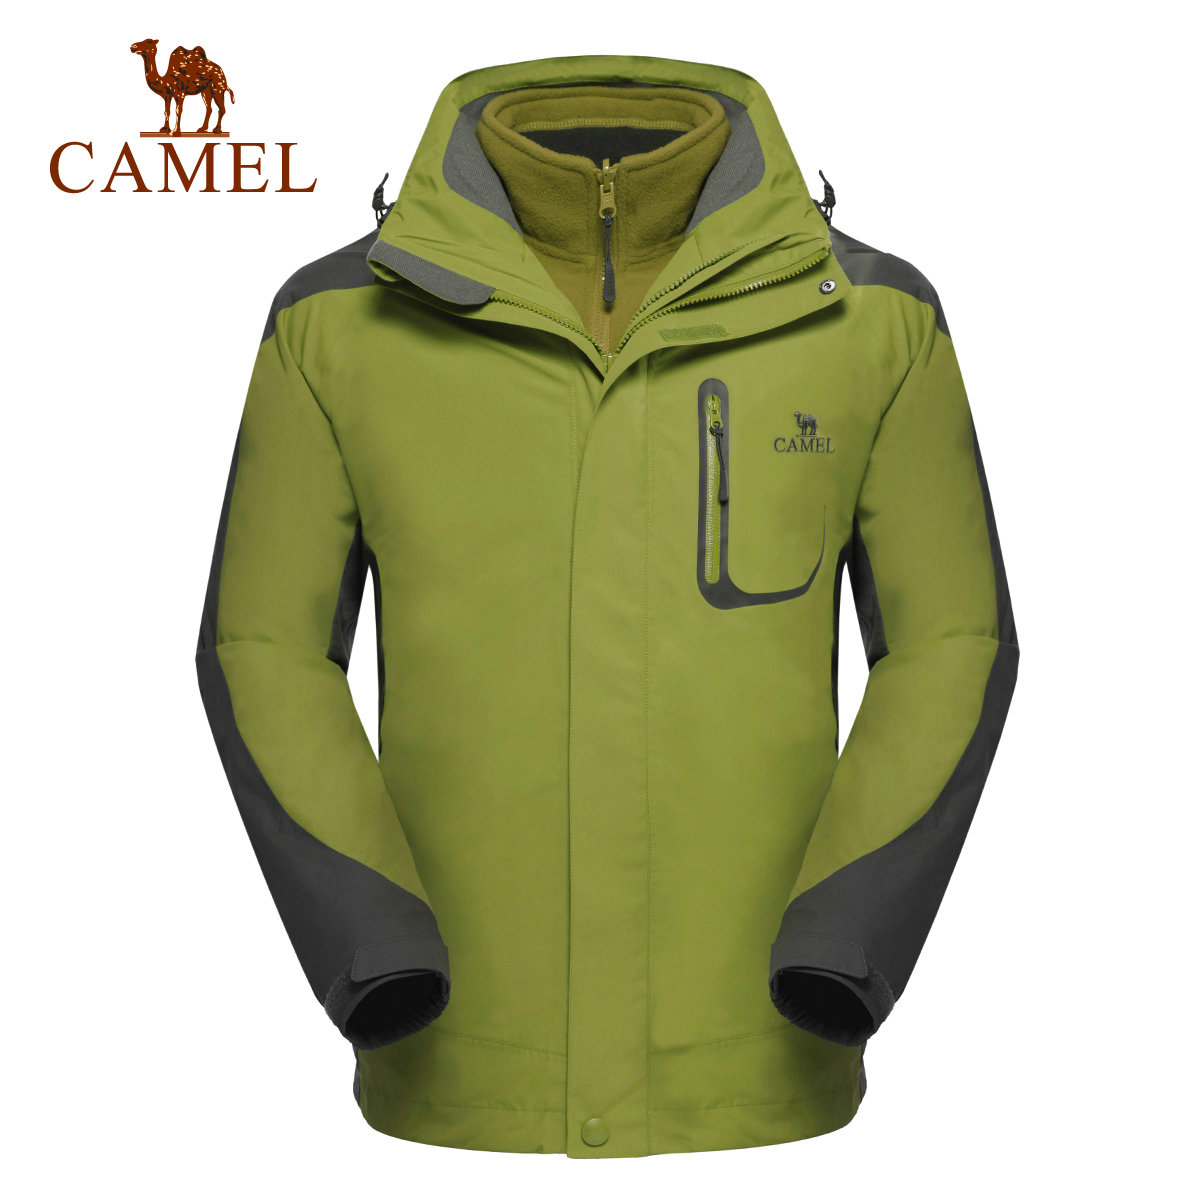 Camel camel outdoor jackets mens jackets piece waterproof windproof outdoor triple jackets